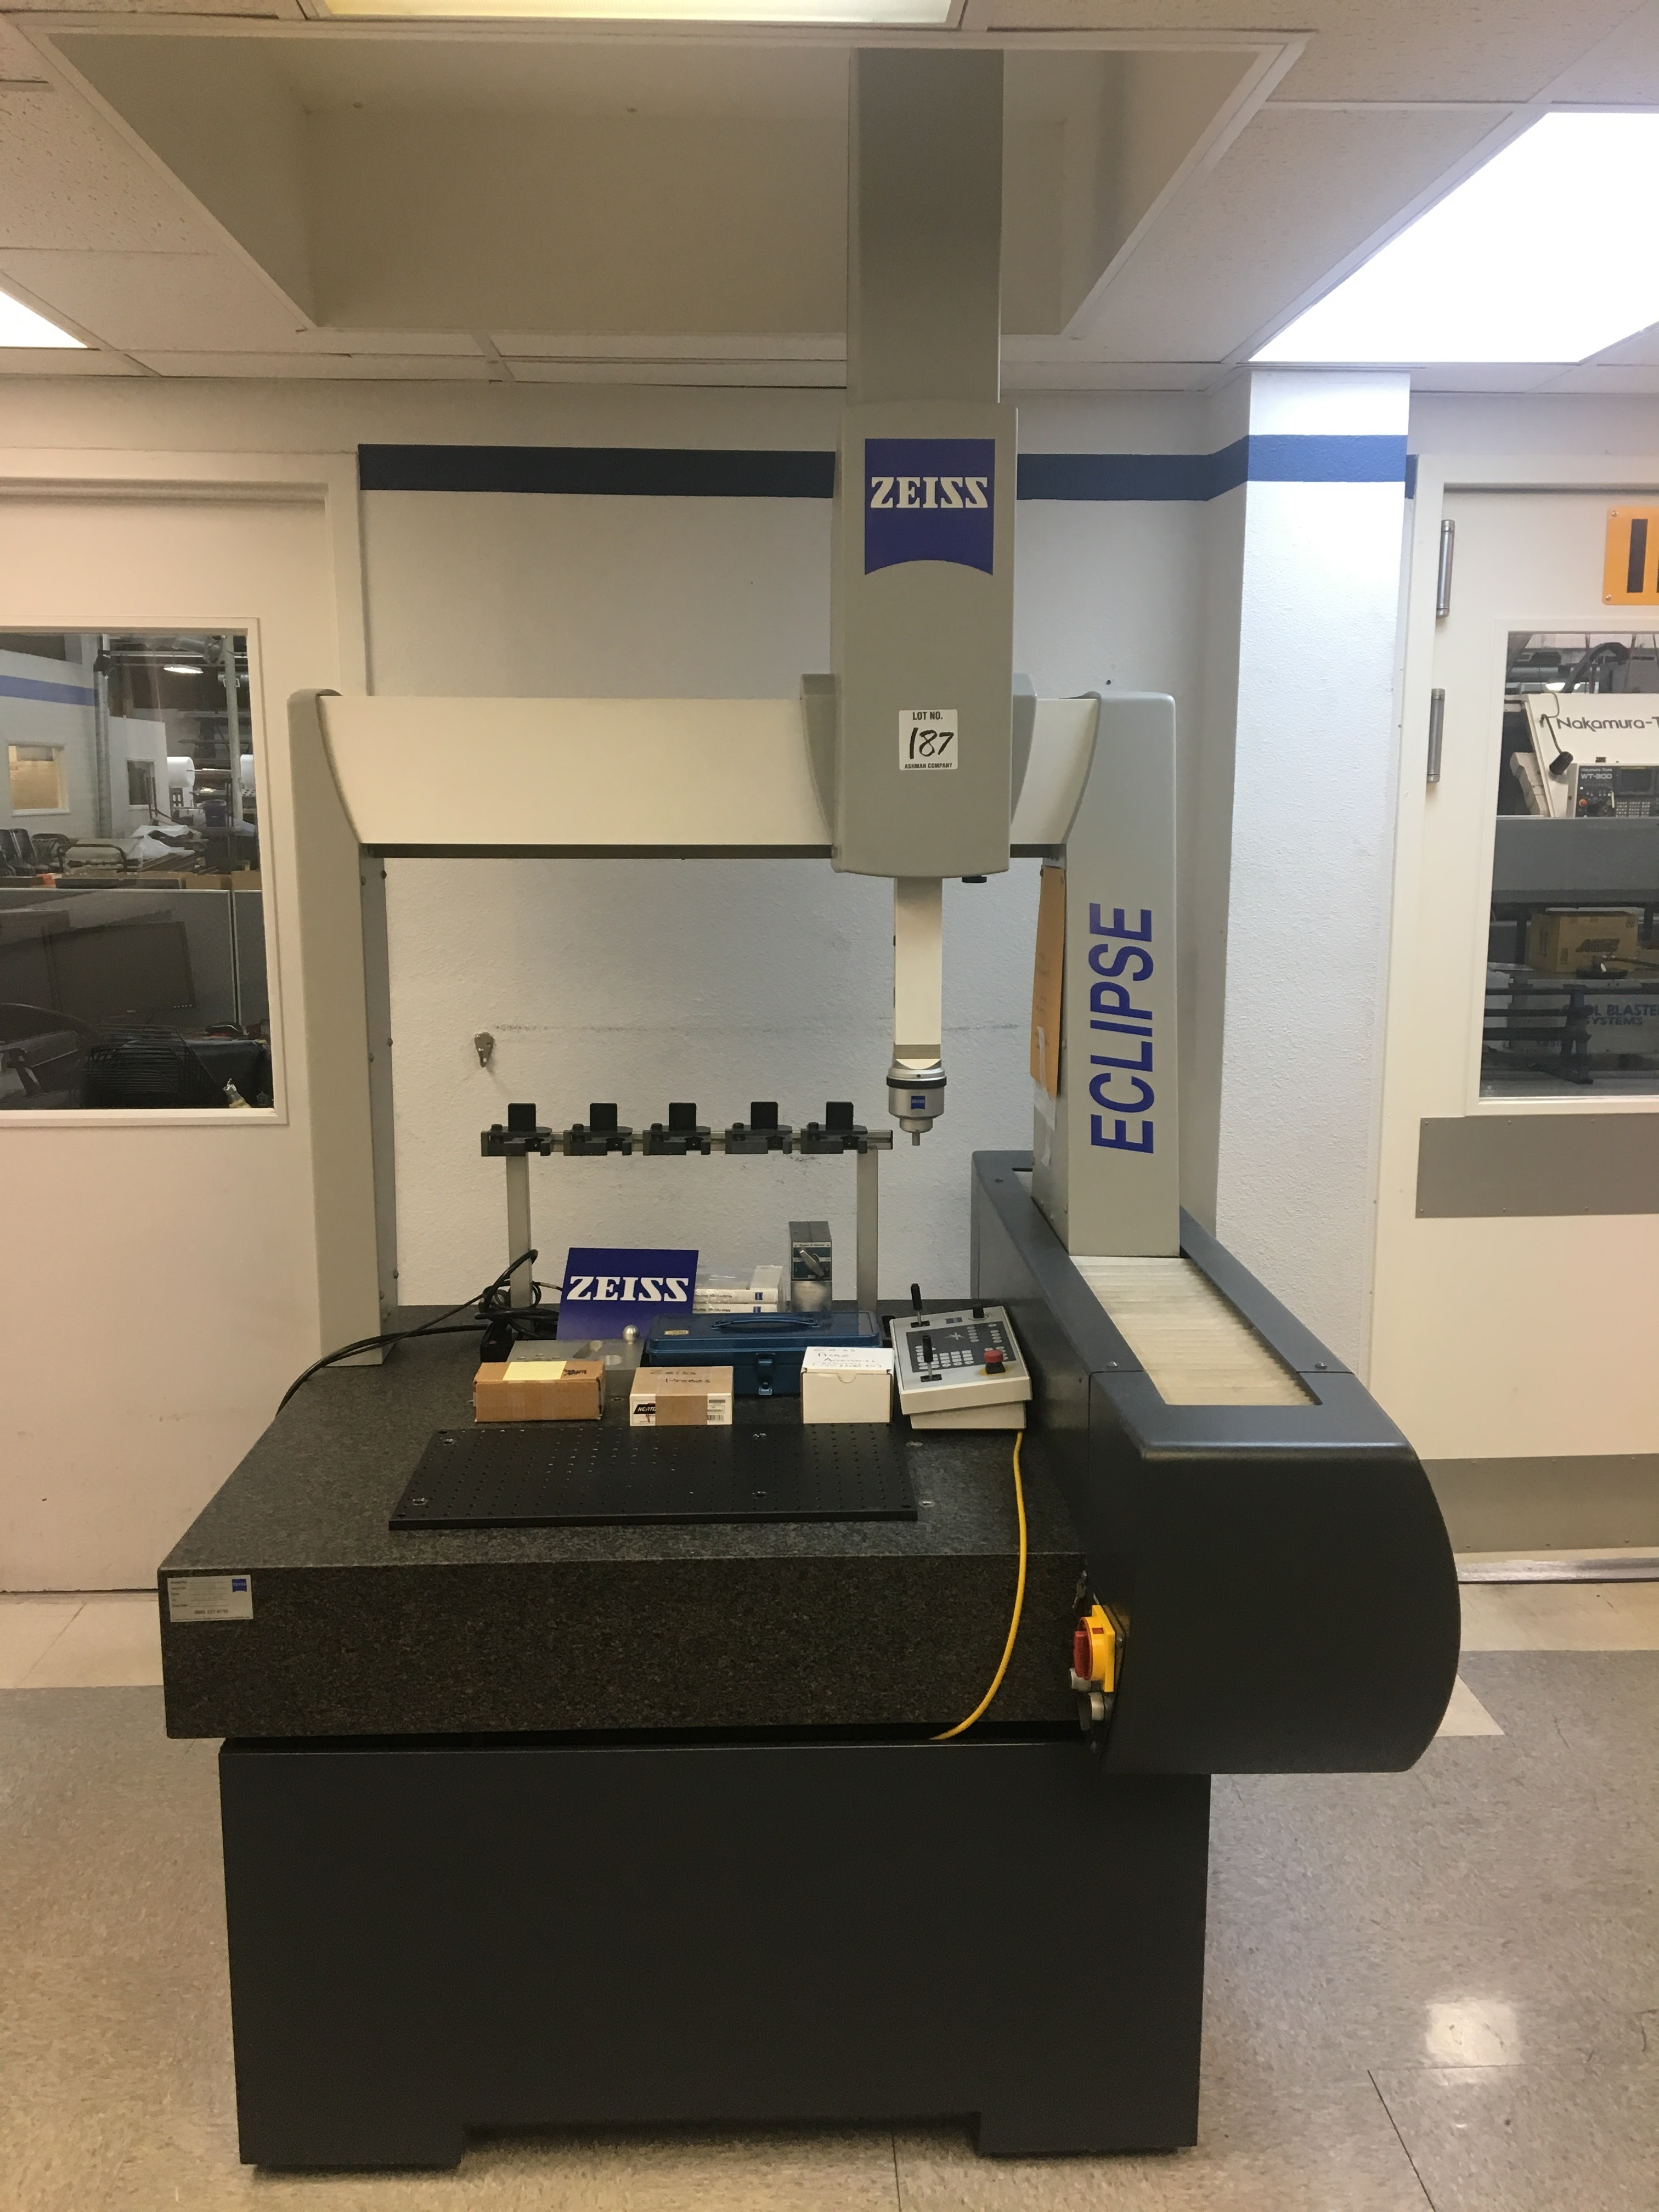 1998 ZEISS ECLIPSE CMM MDL  W72951, INCLUDES 5 6 SOFTWARE